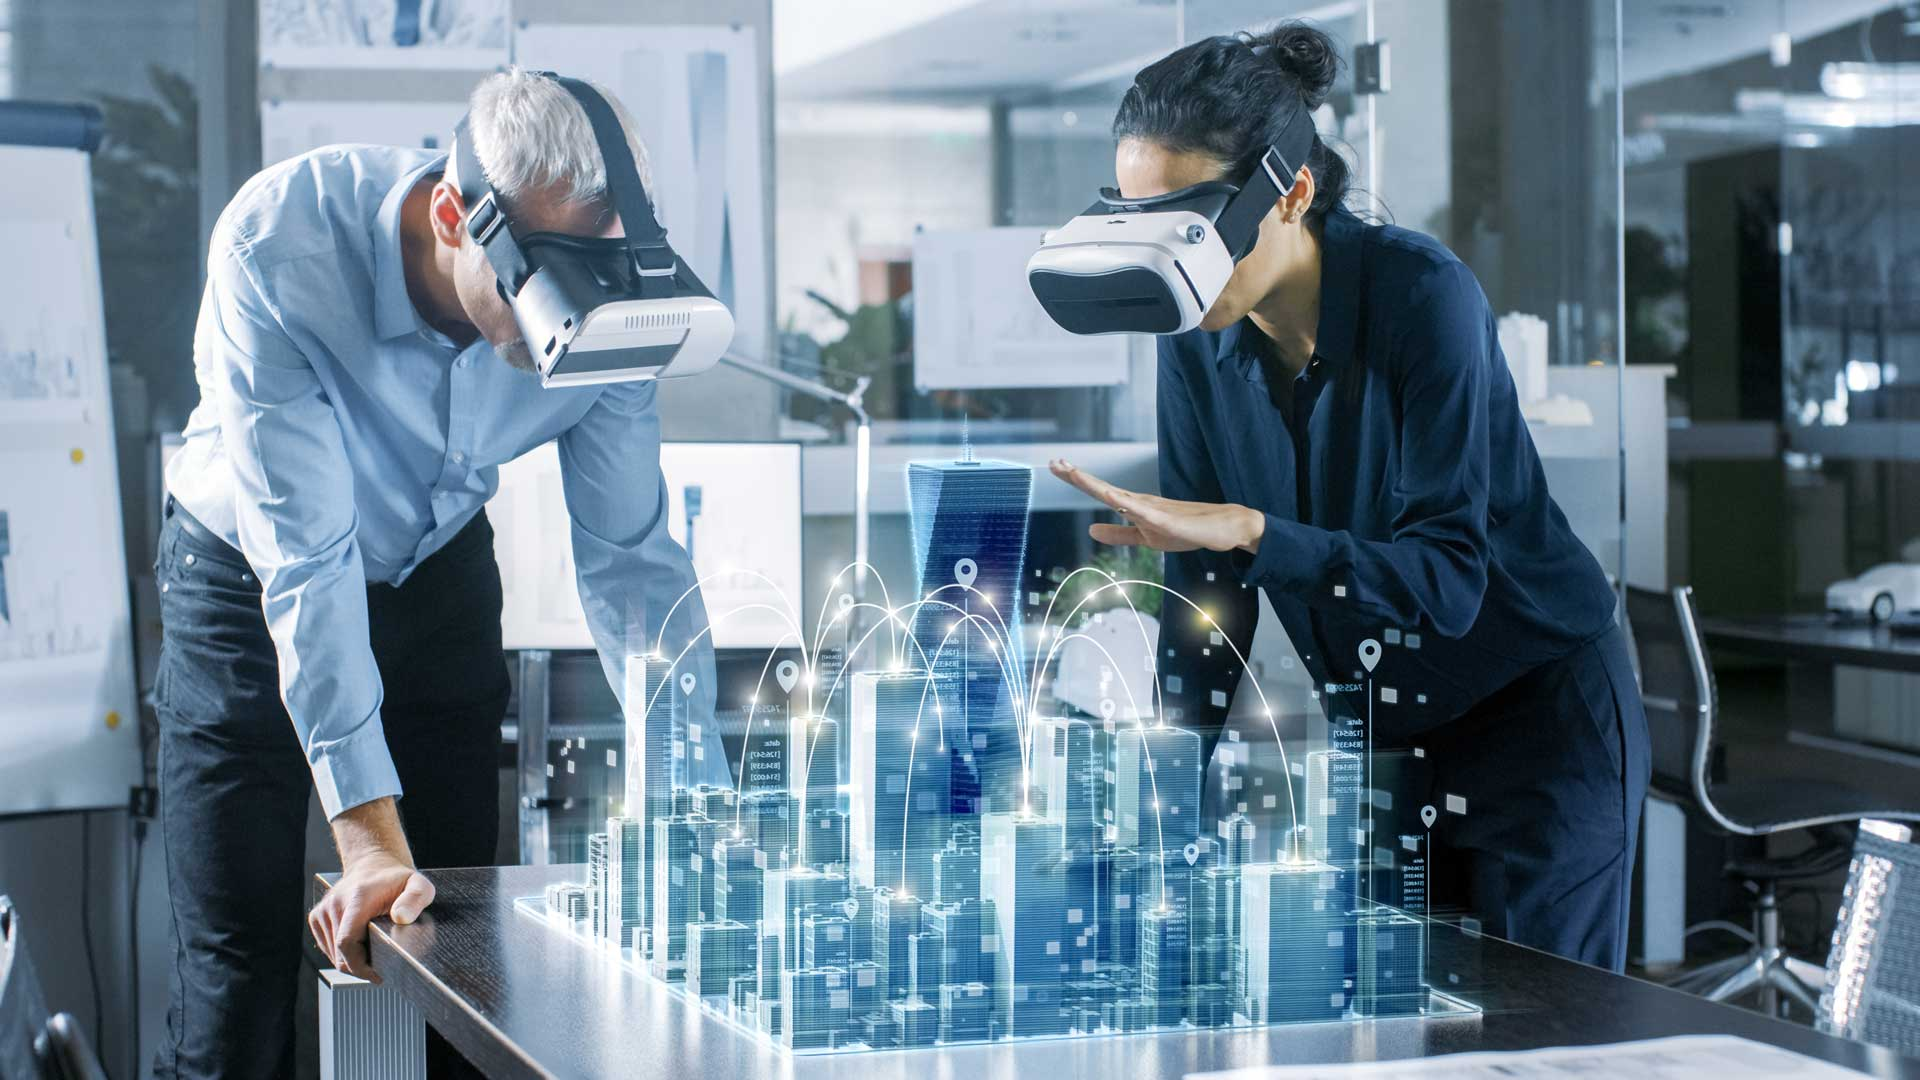 Planners are collaborating with VR headsets